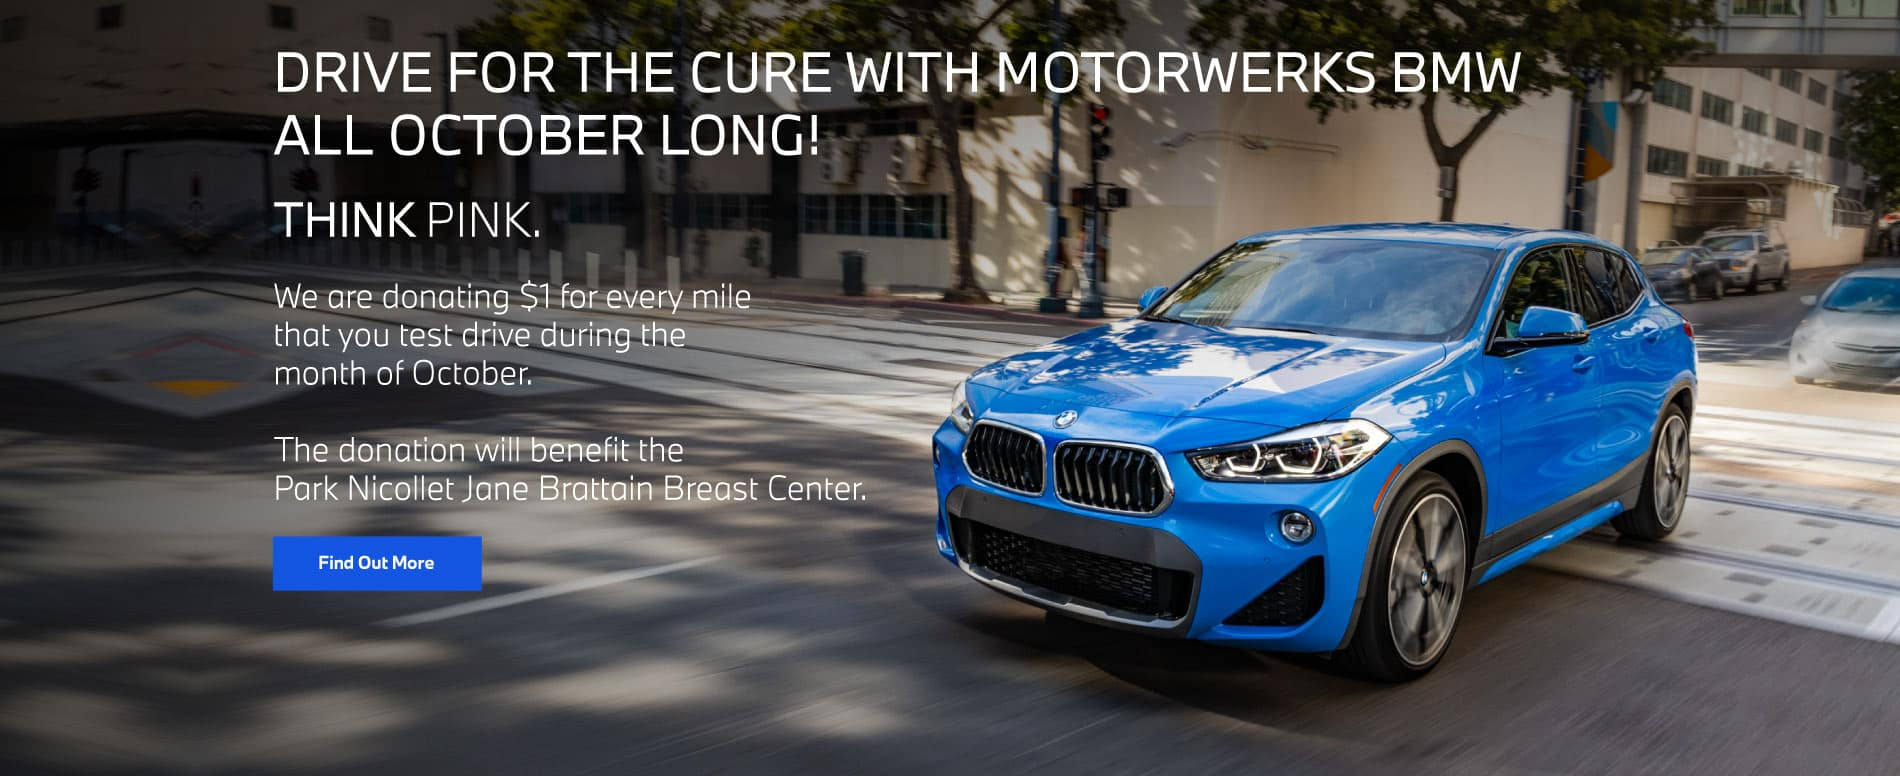 DRIVE FOR THE CURE WITH MOTORWERKS BMW ALL OCTOBER LONG! | Find out More